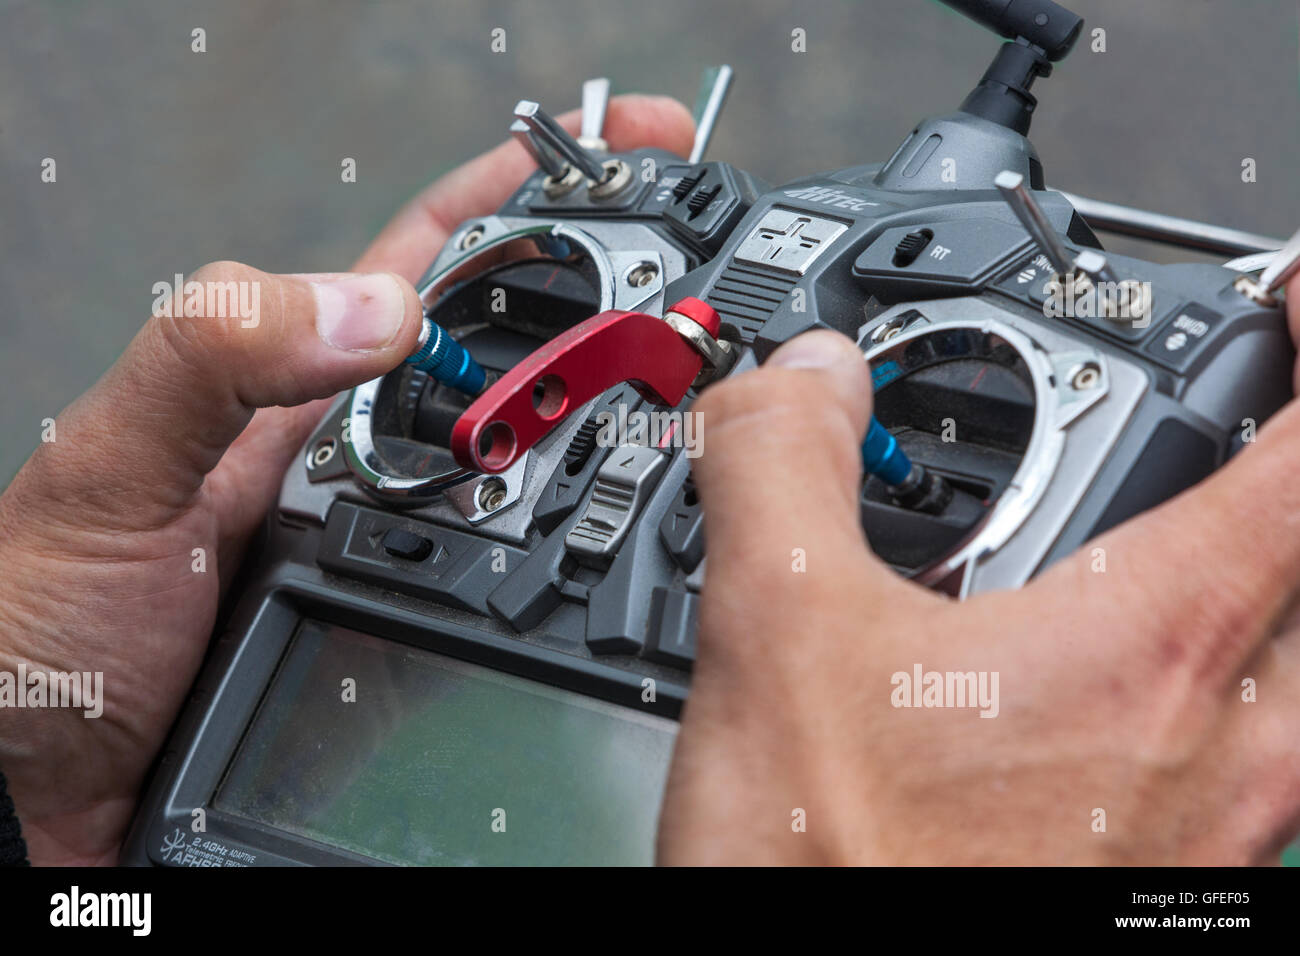 Radio control panel for drone - Stock Image